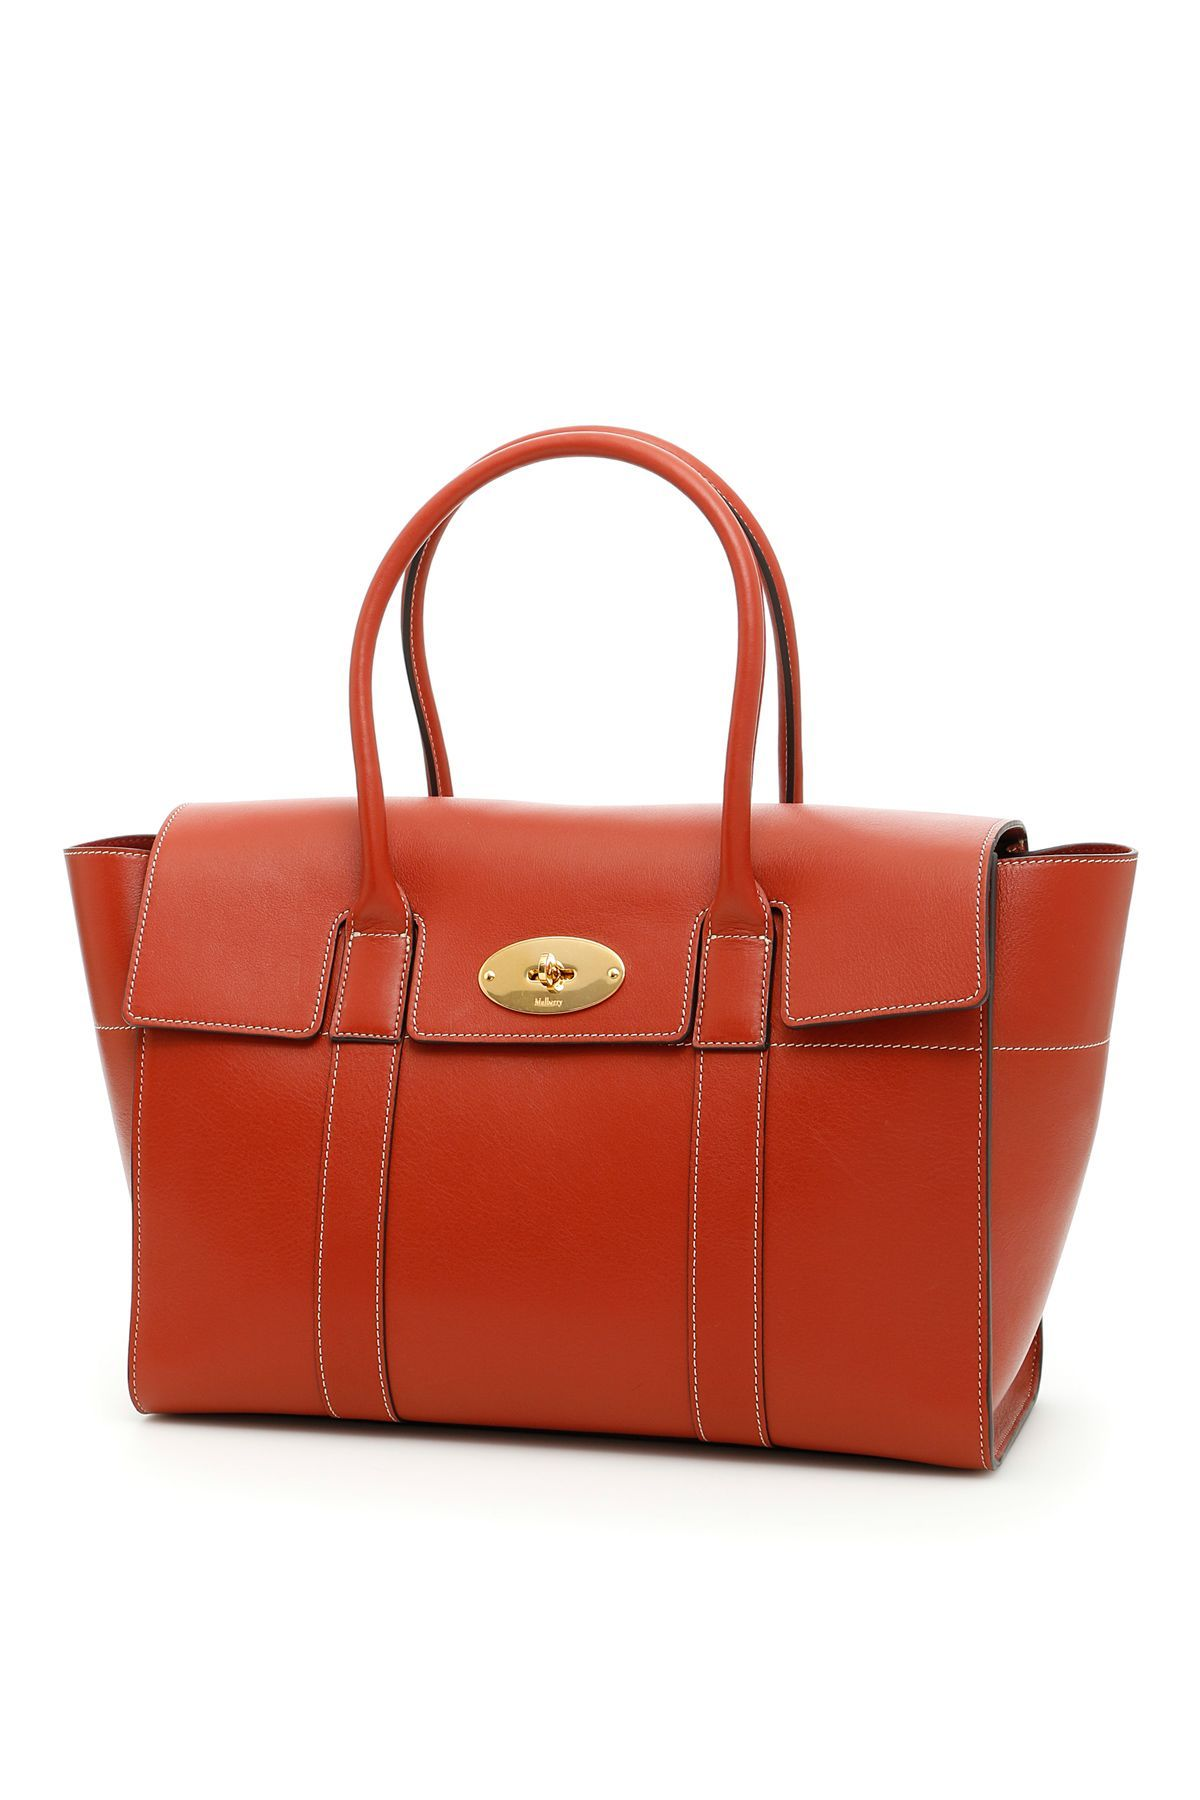 dddfa082d22f ... greece mulberry new bayswater bag. mulberry bags hand bags silk suede  aa4c6 640c4 ...